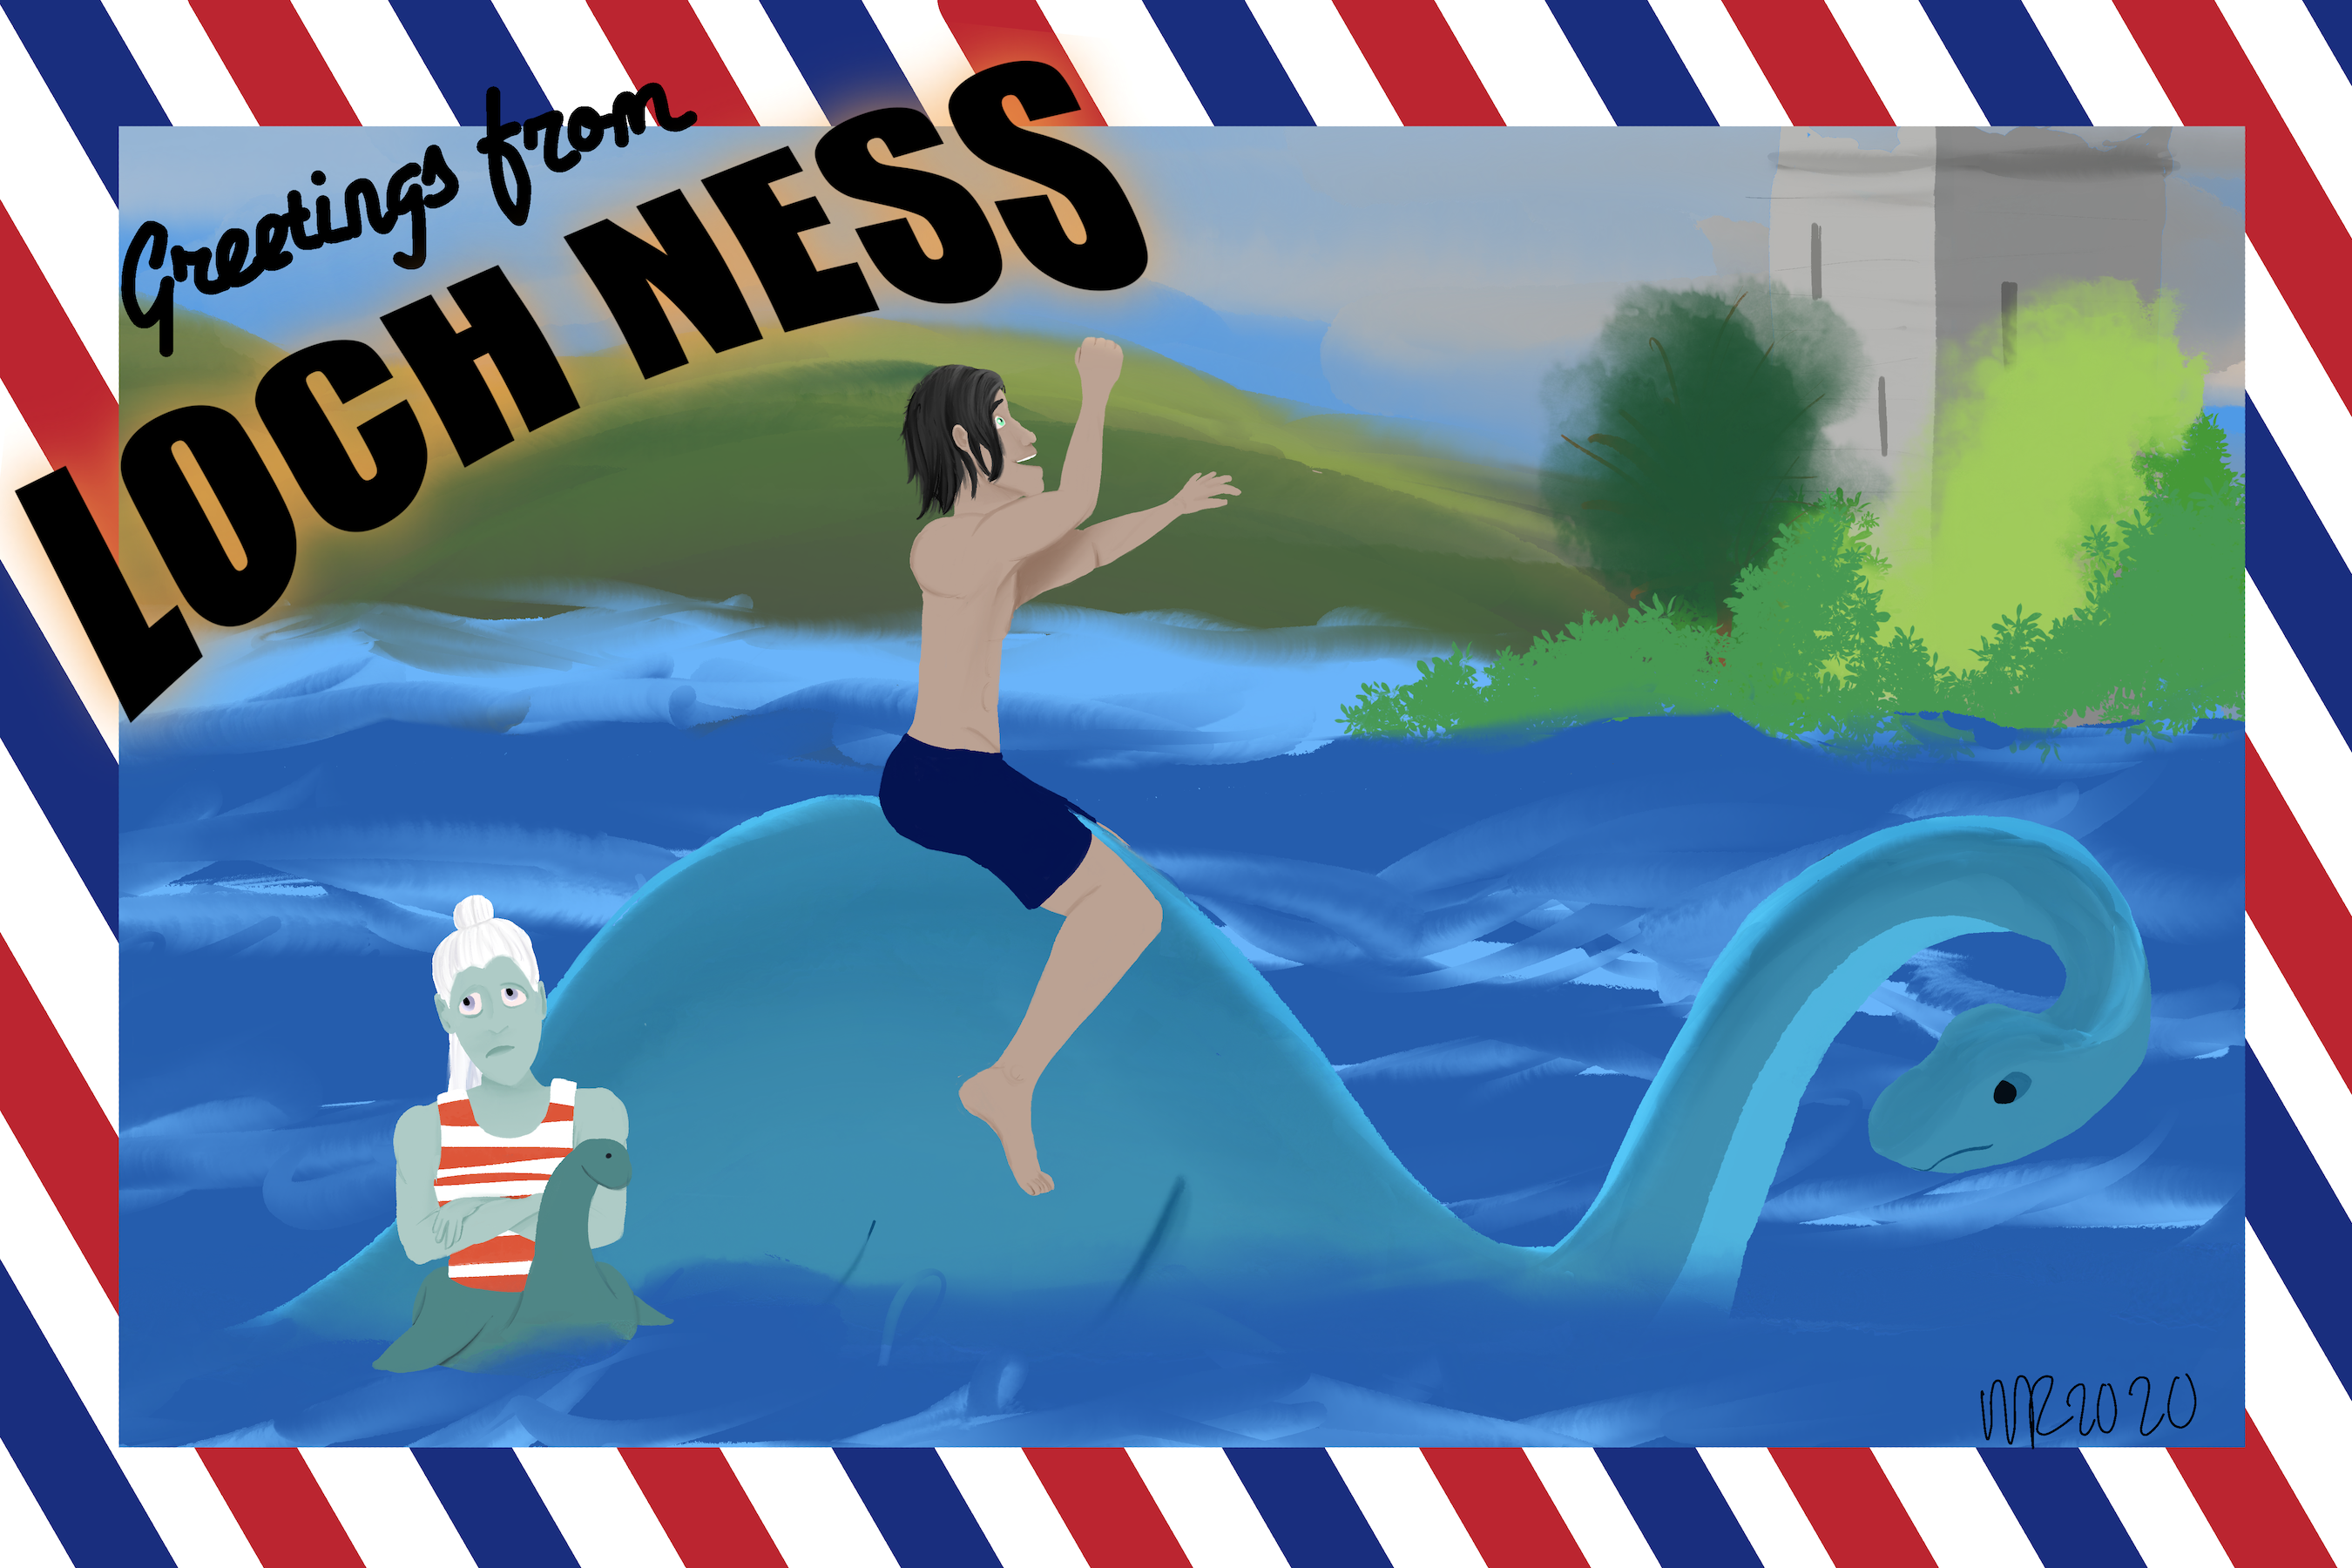 Greetings from Loch Ness